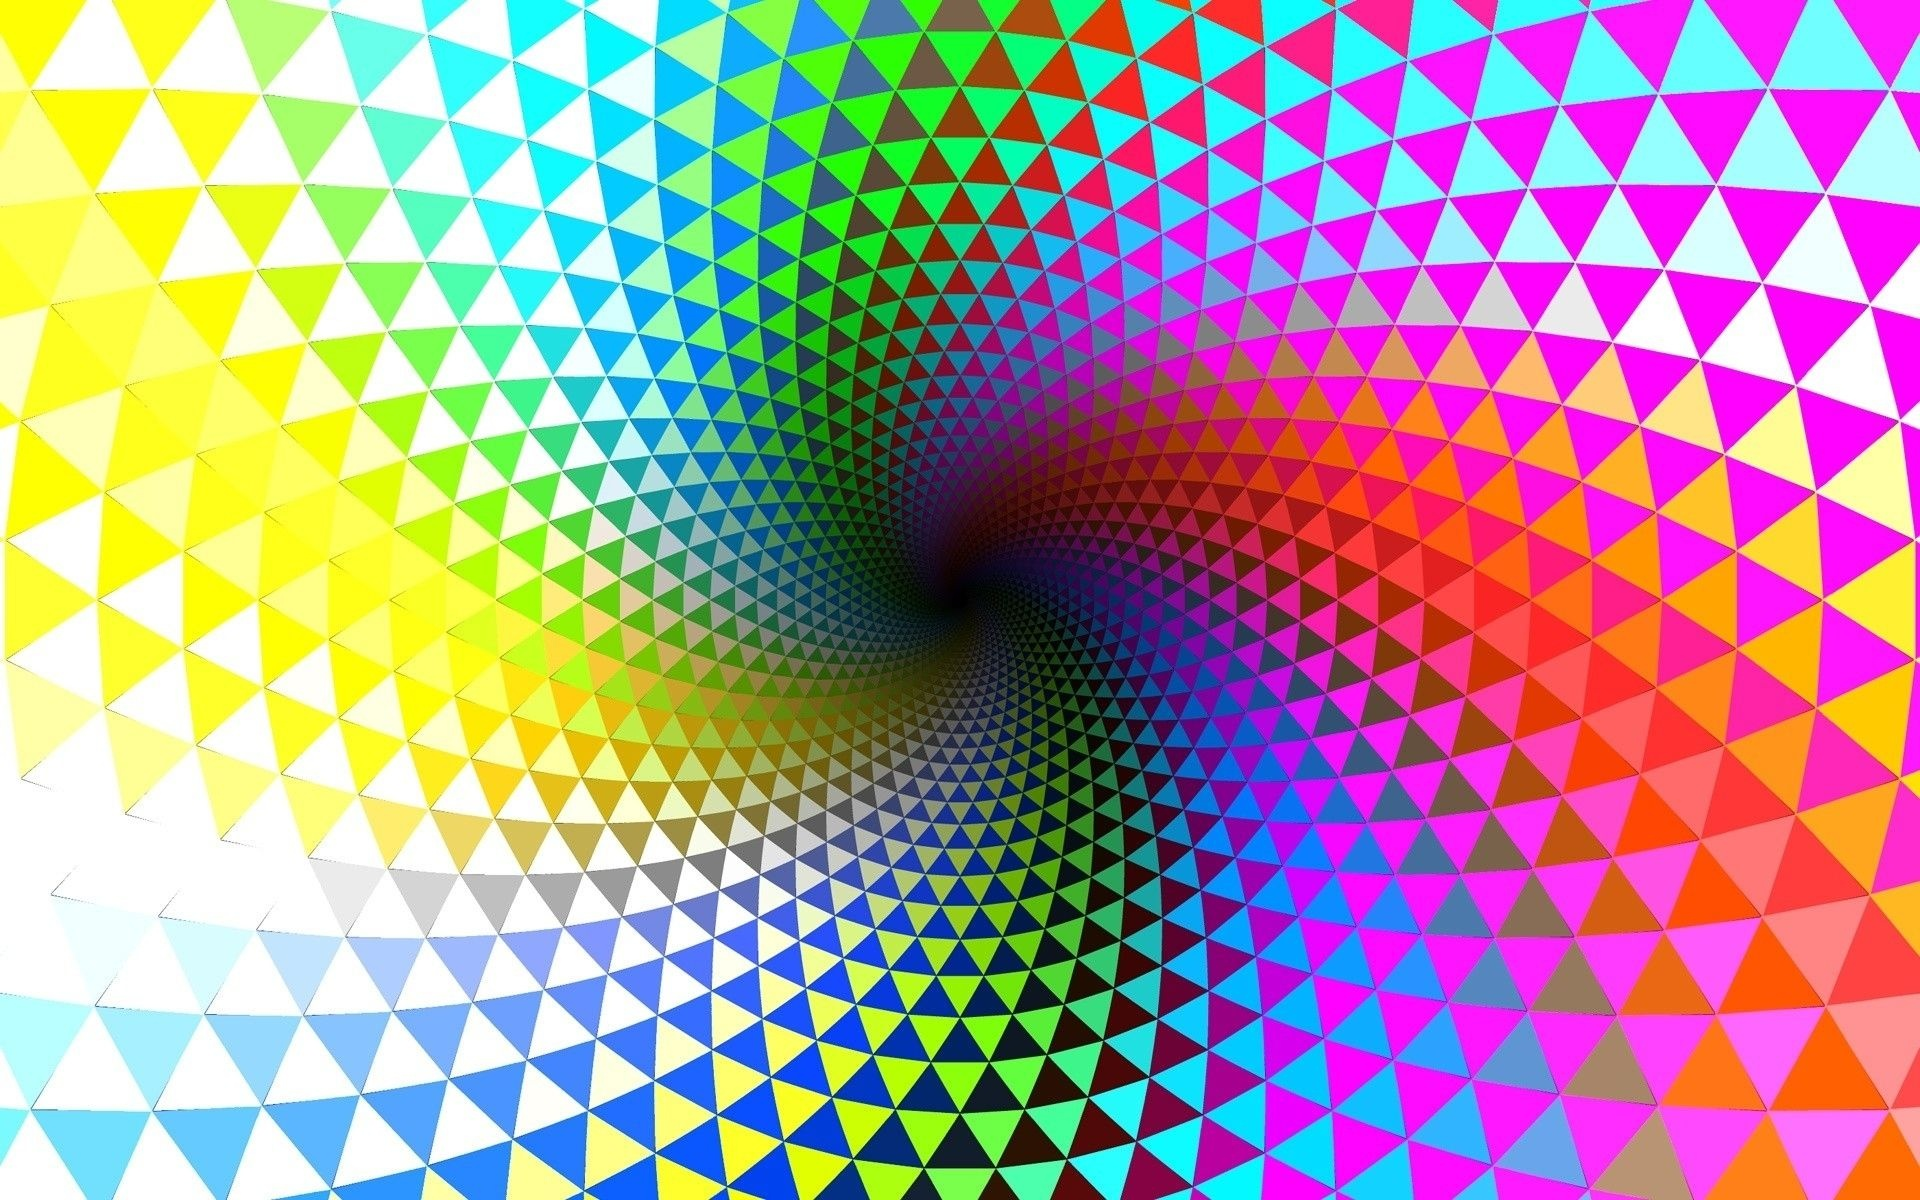 Mind Teaser Psychedelic Wallpaper 1920x1200 Full HD Wallpapers 1920x1200